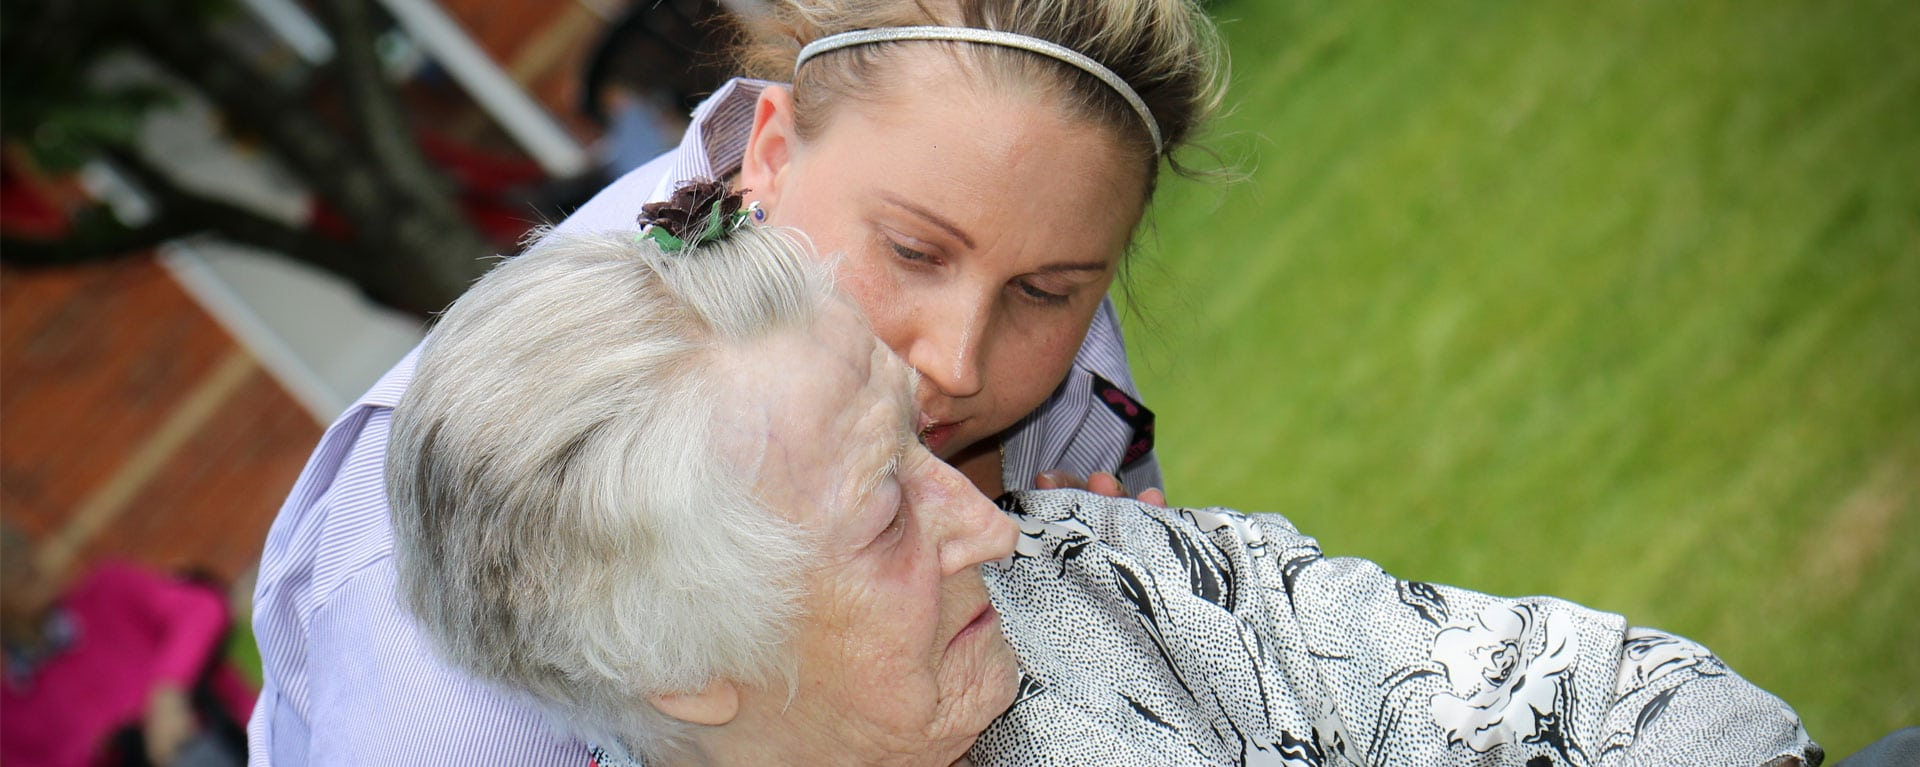 Laurel Care Home Care Assistant Checking on a resident